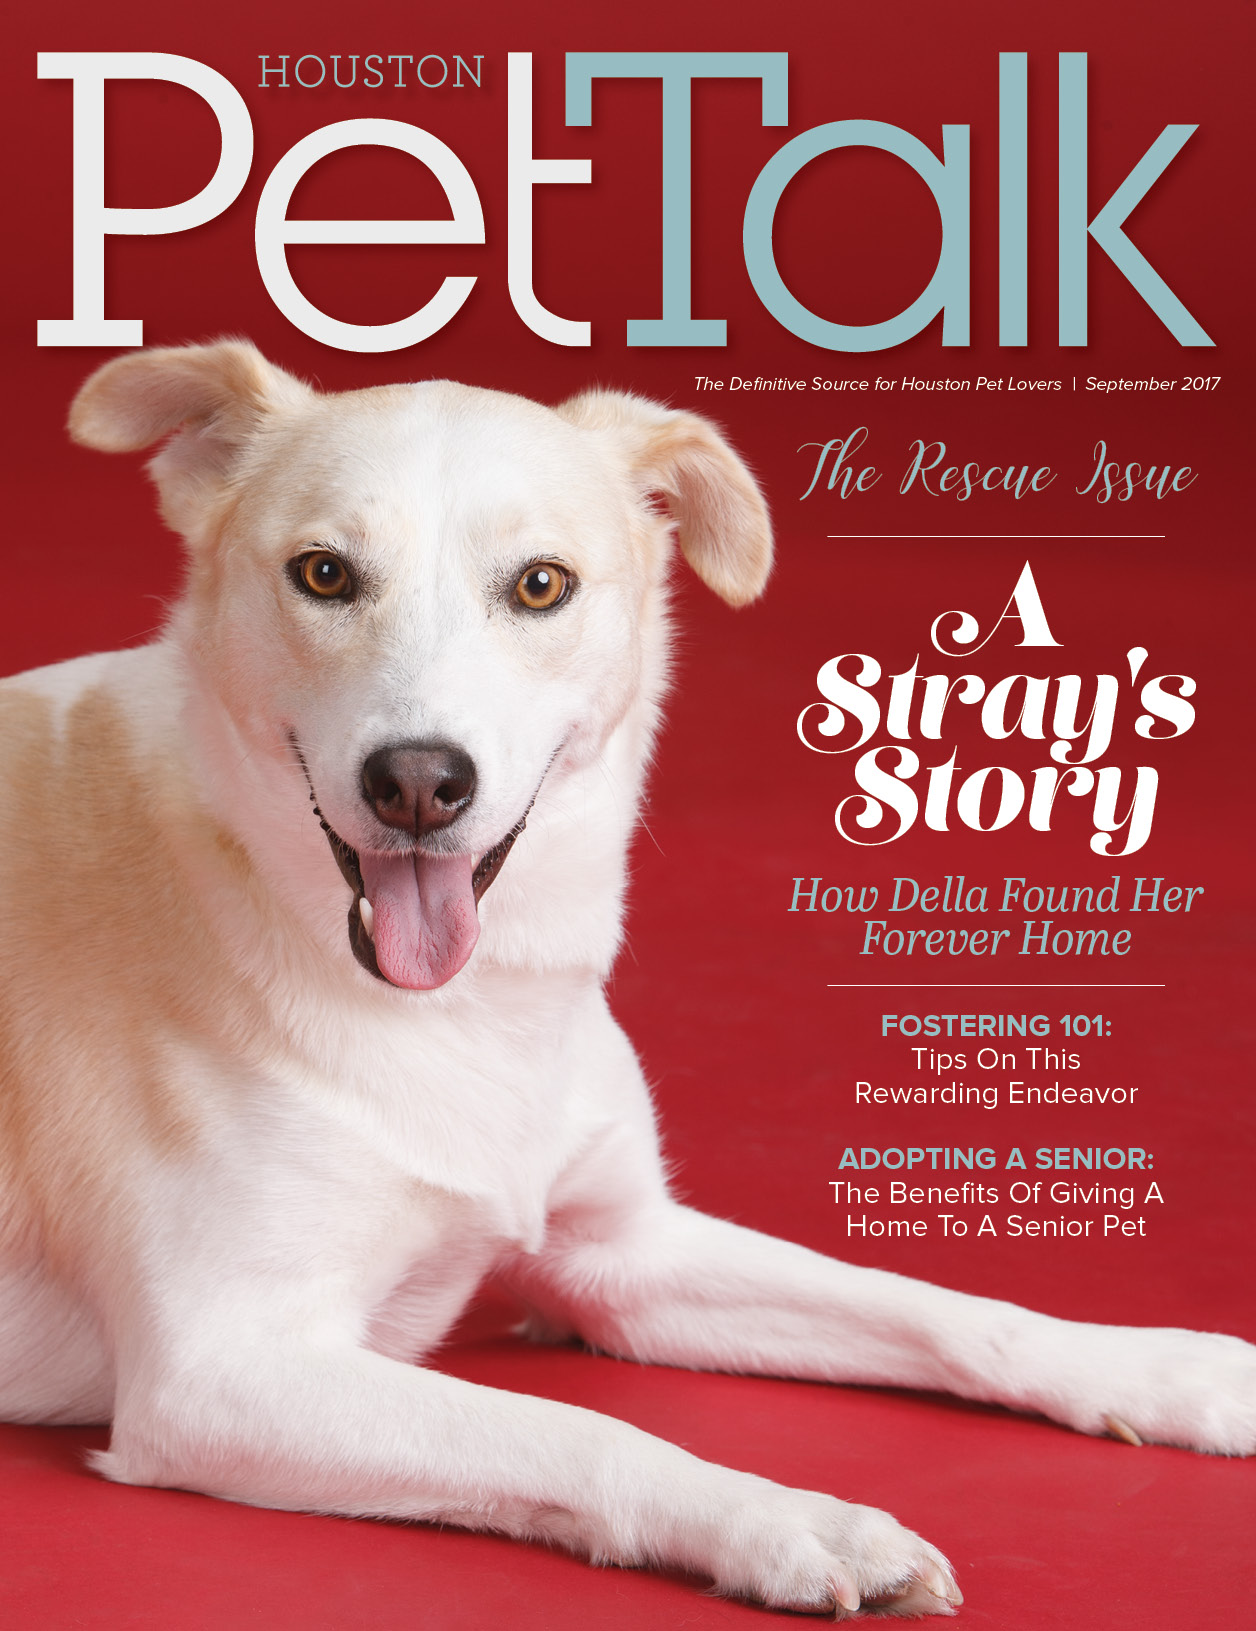 September 2017 Digital Issue of Houston PetTalk